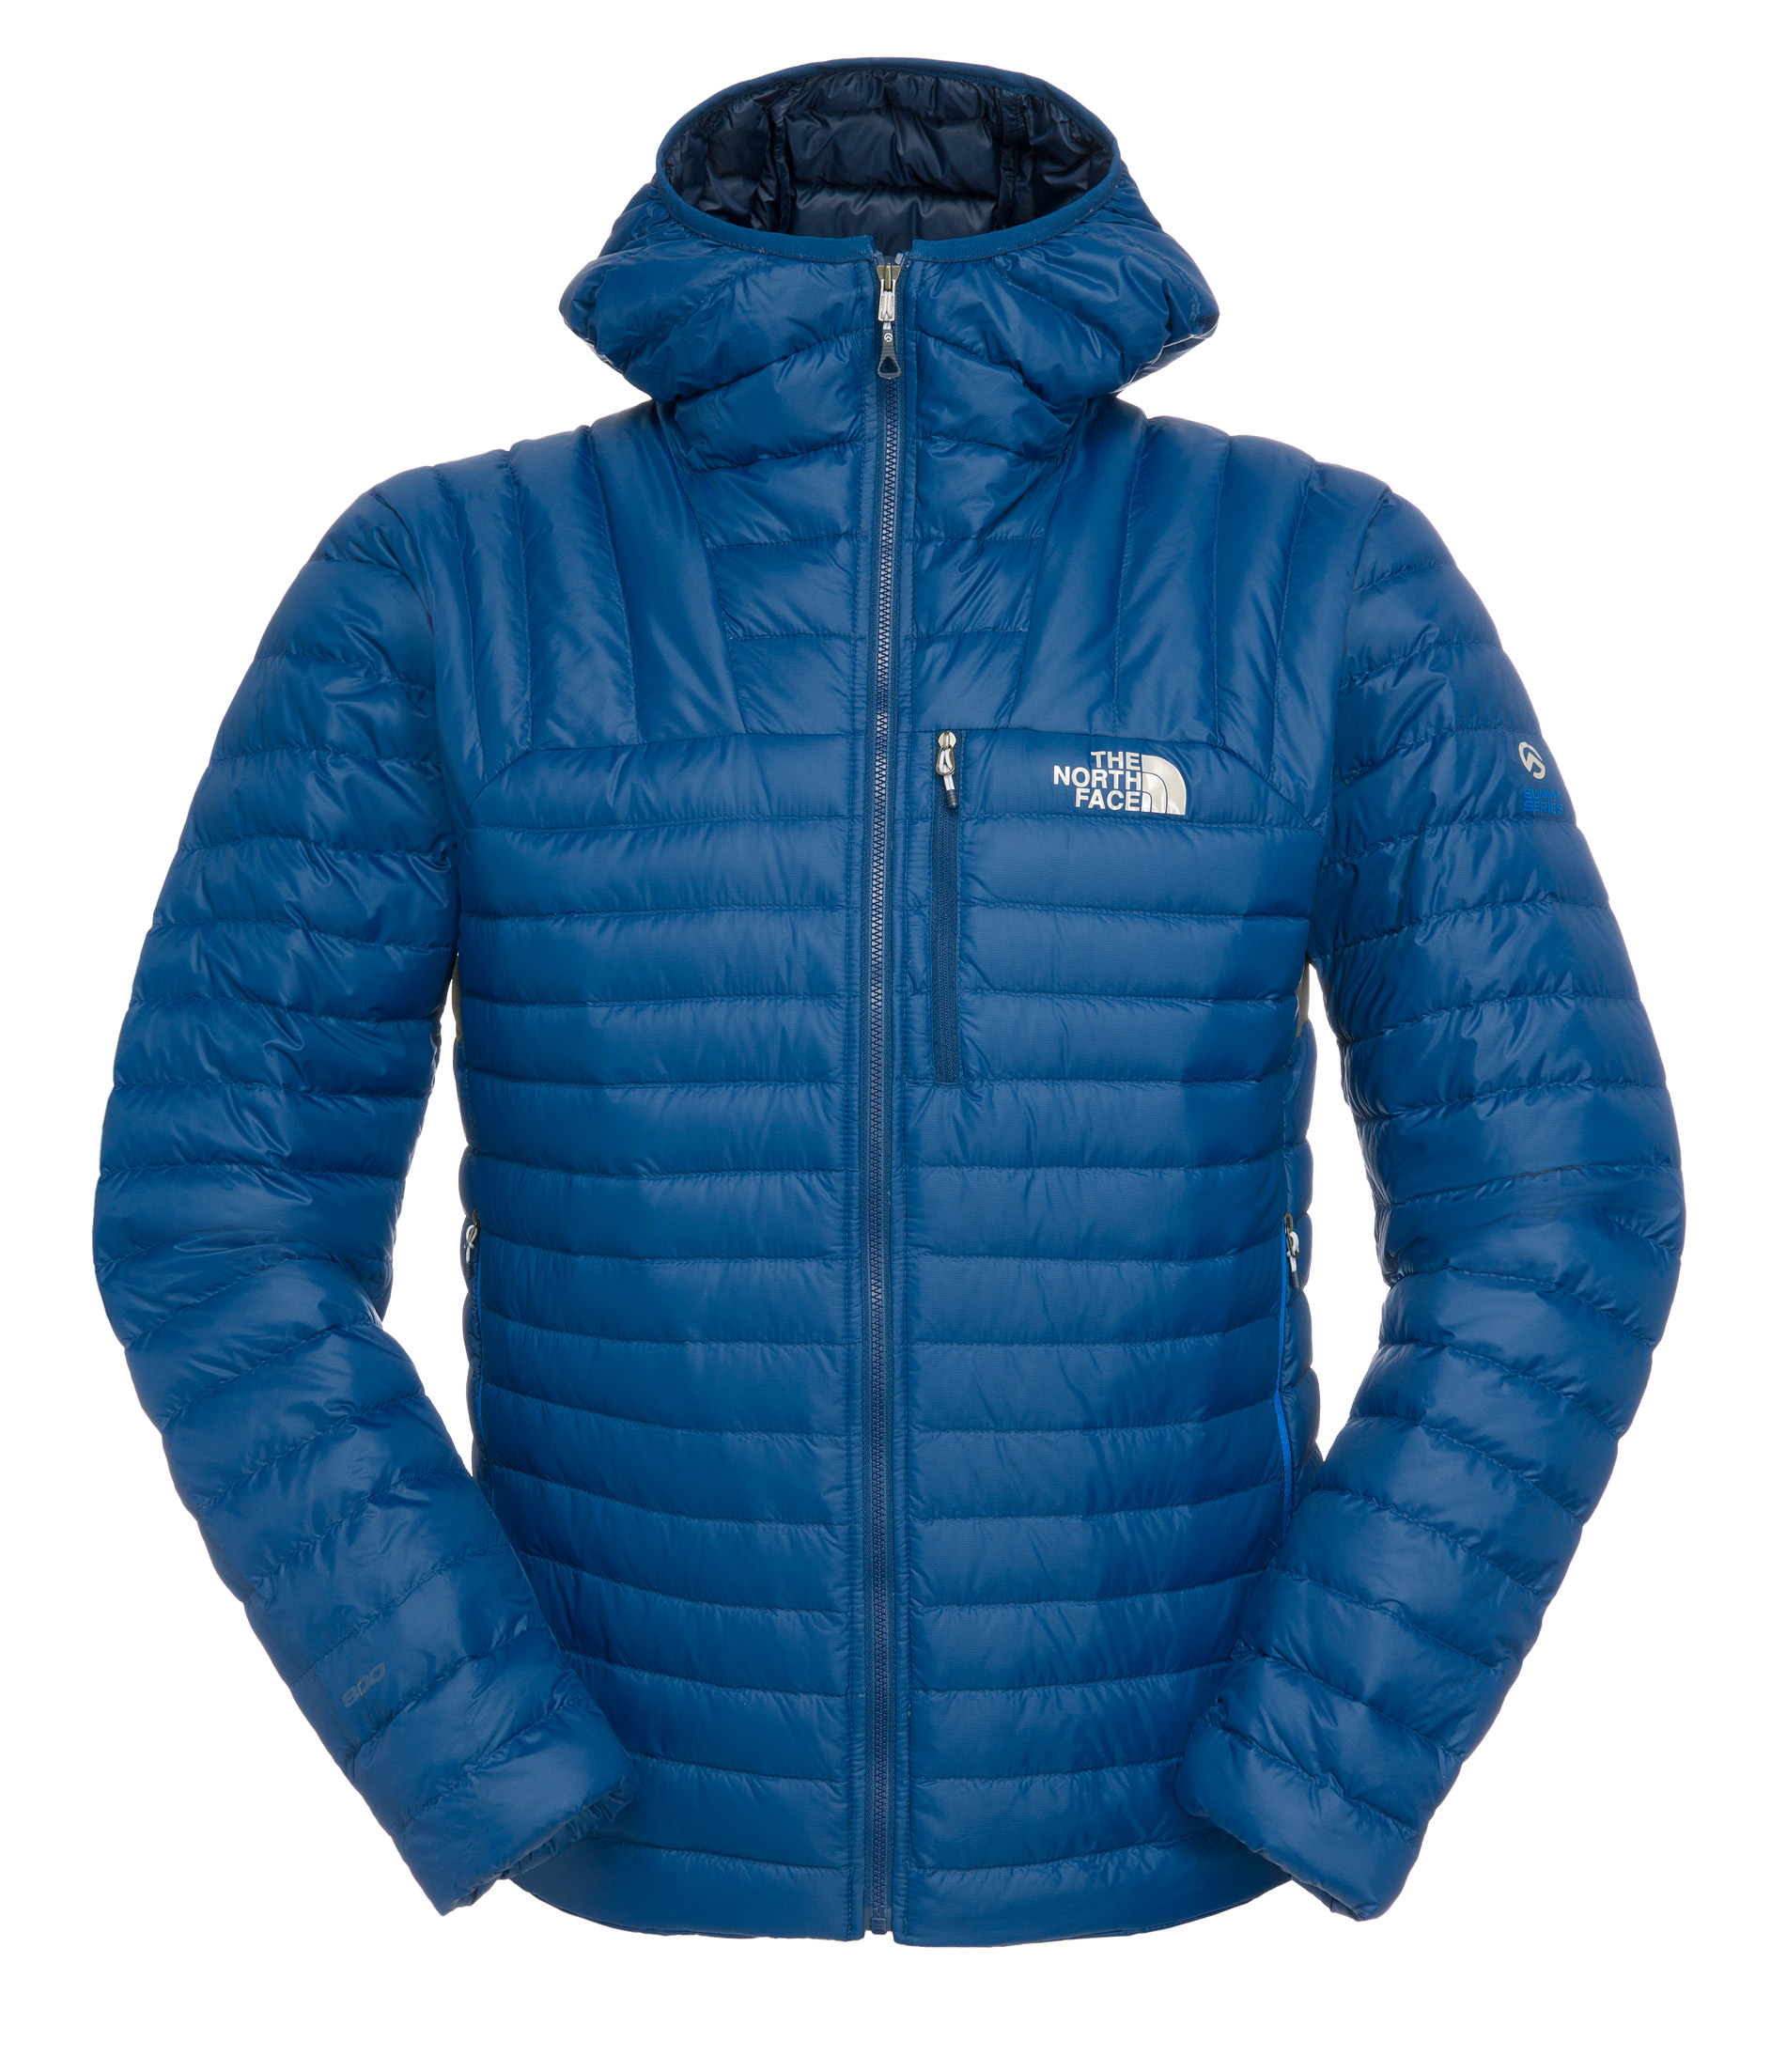 The north face men's thunder jacket